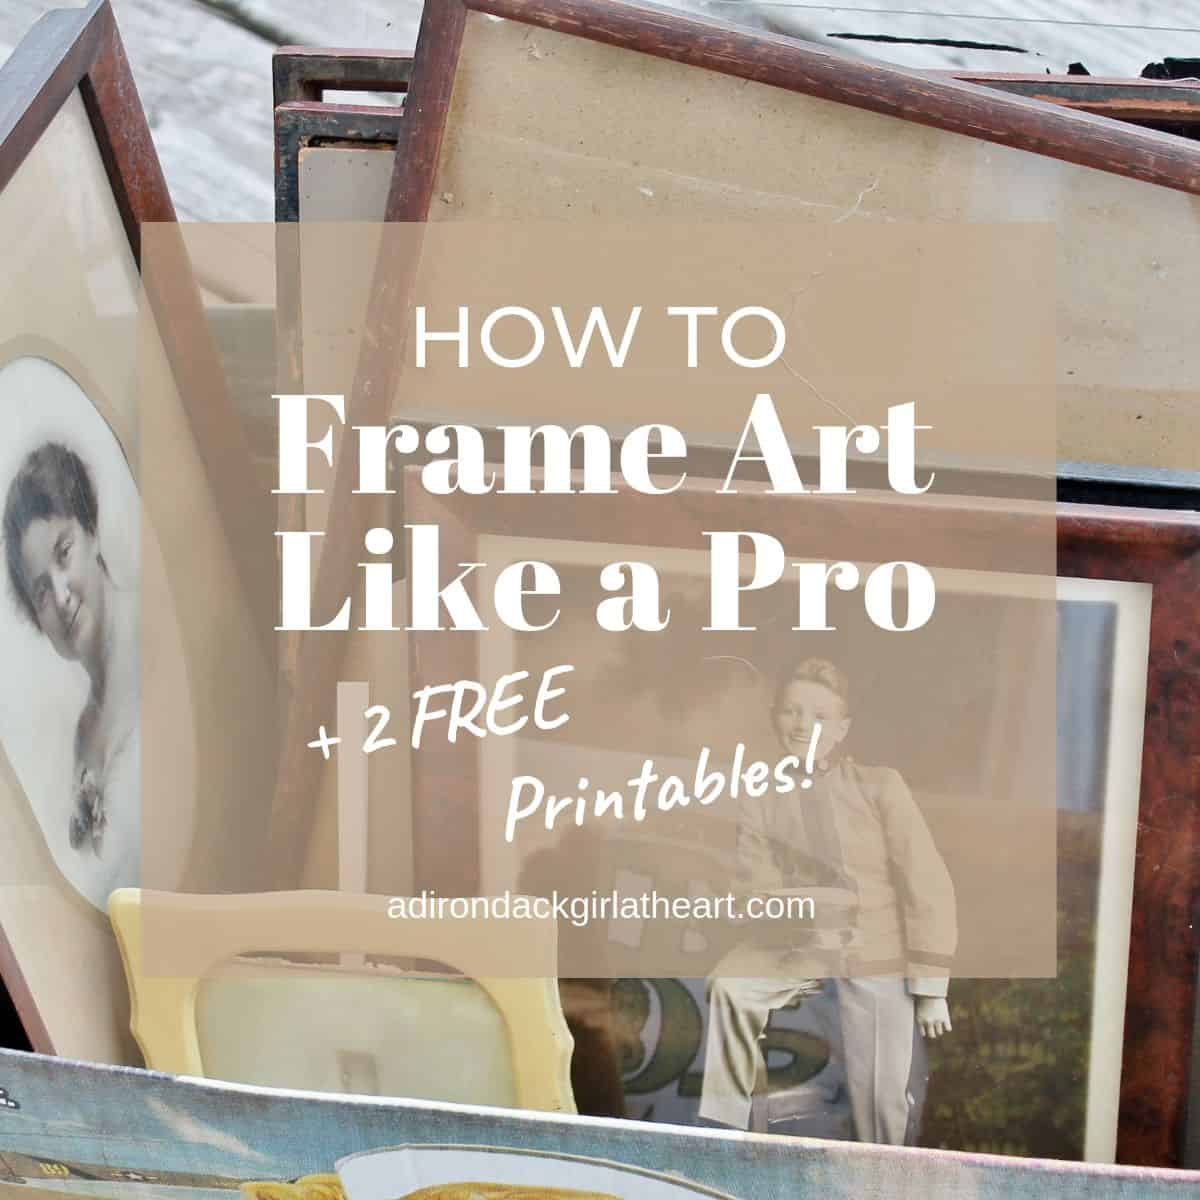 How to Frame Art Like a Professional +FREE Printables! • Adirondack